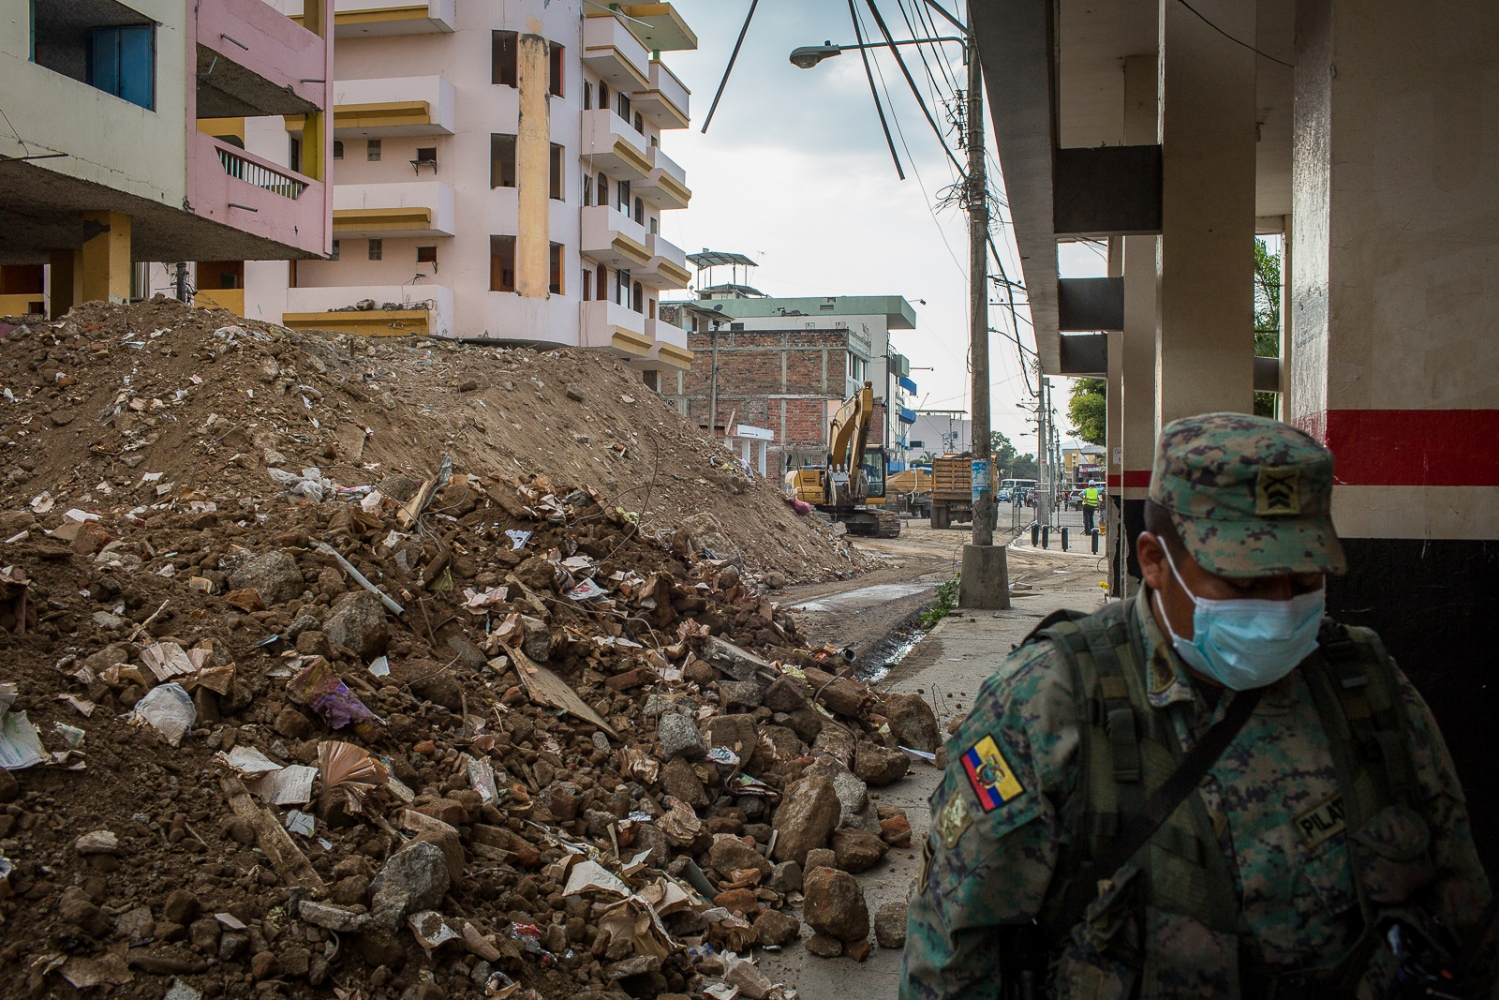 A soldier passes by some derelict buildings in Portoviejo's centre. He uses a mask to avoid breathing the dust that fills the air, after so many buildings collapsed. Portoviejo's town centre is closed to the public and secured by the army since most of its building were heavily damaged by the earthquake, turning it into a ground zero area.